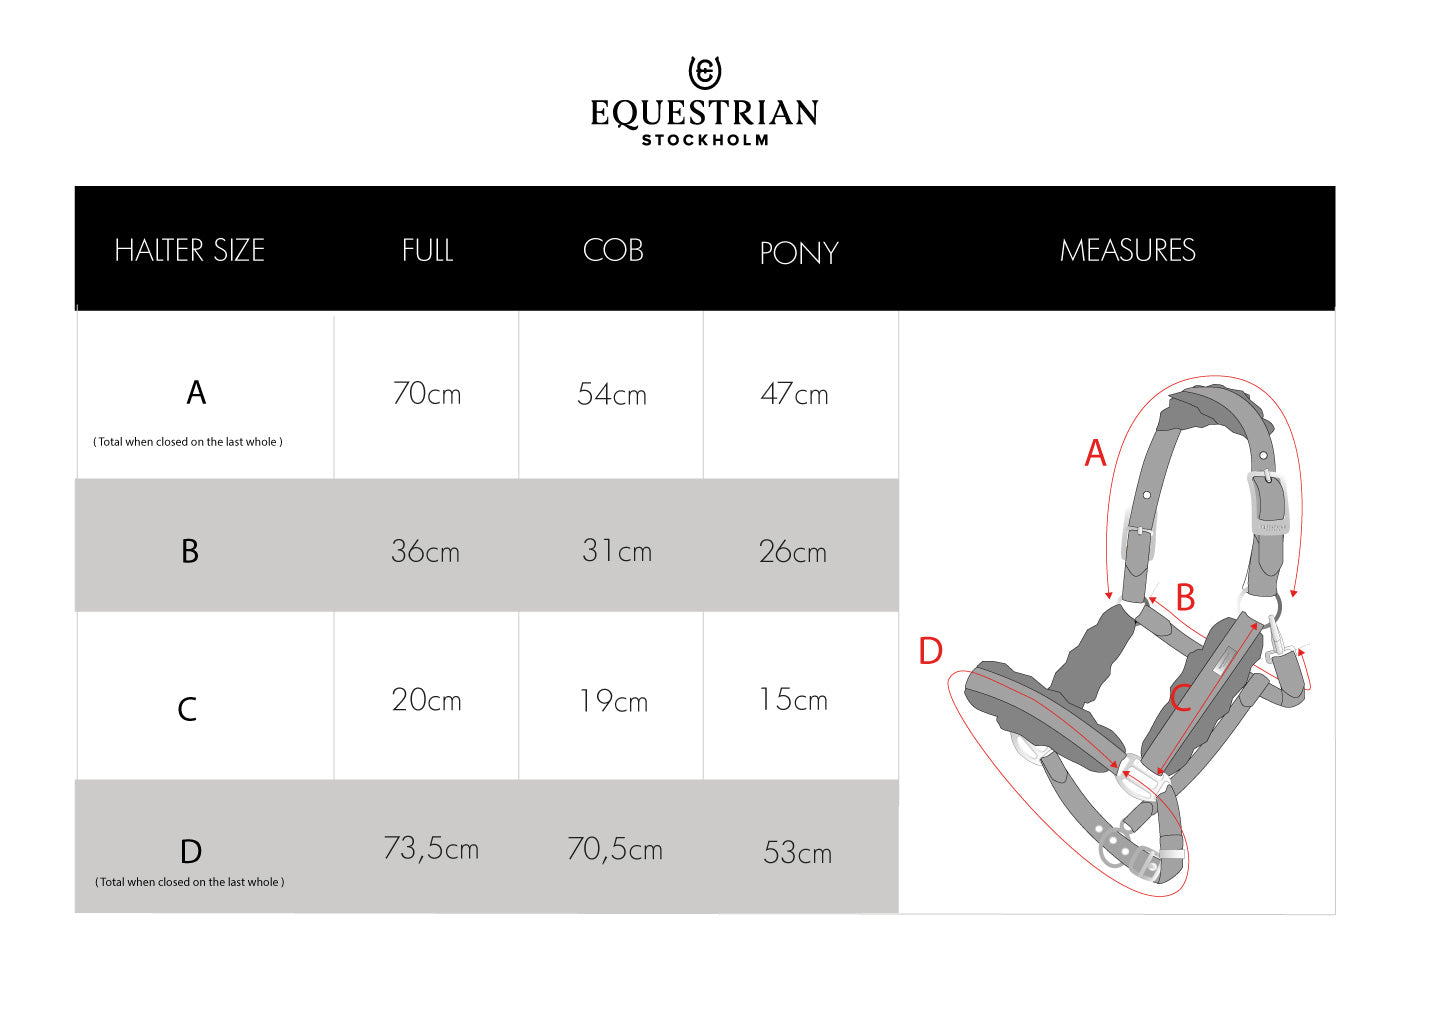 equestrian stockholm headcollar size guide